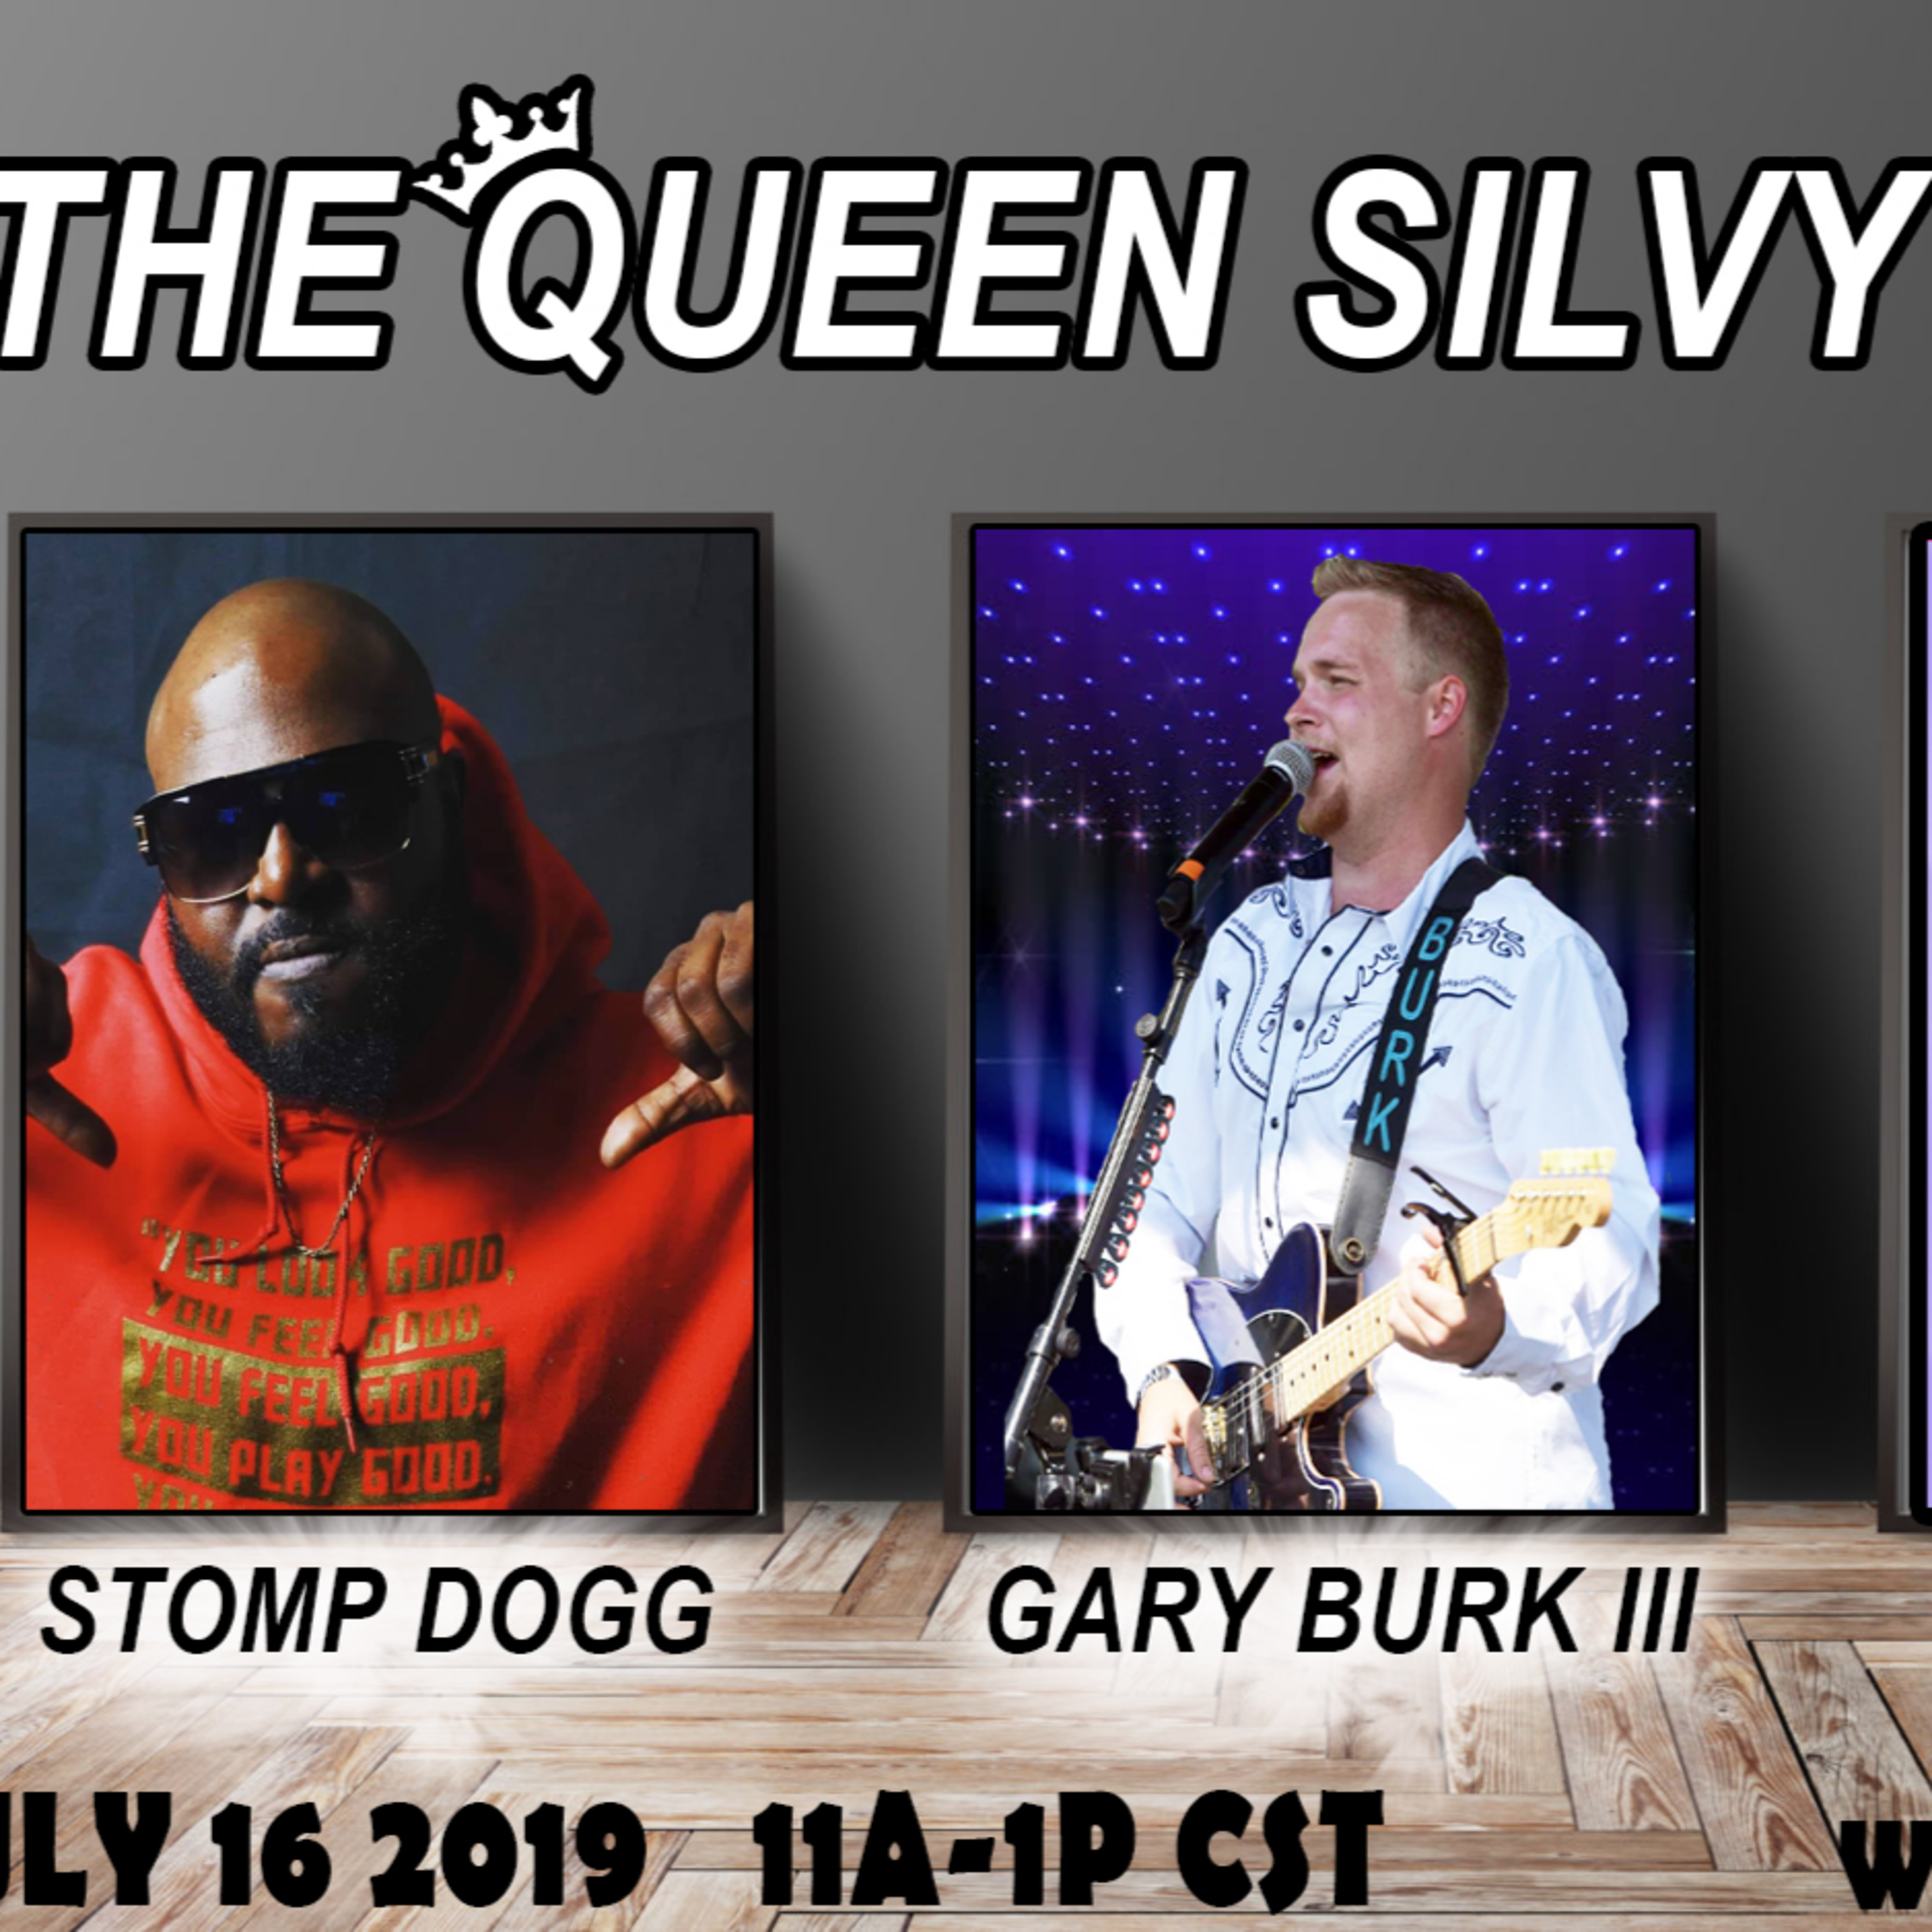 The Queen Silvy Show - July 16 2019